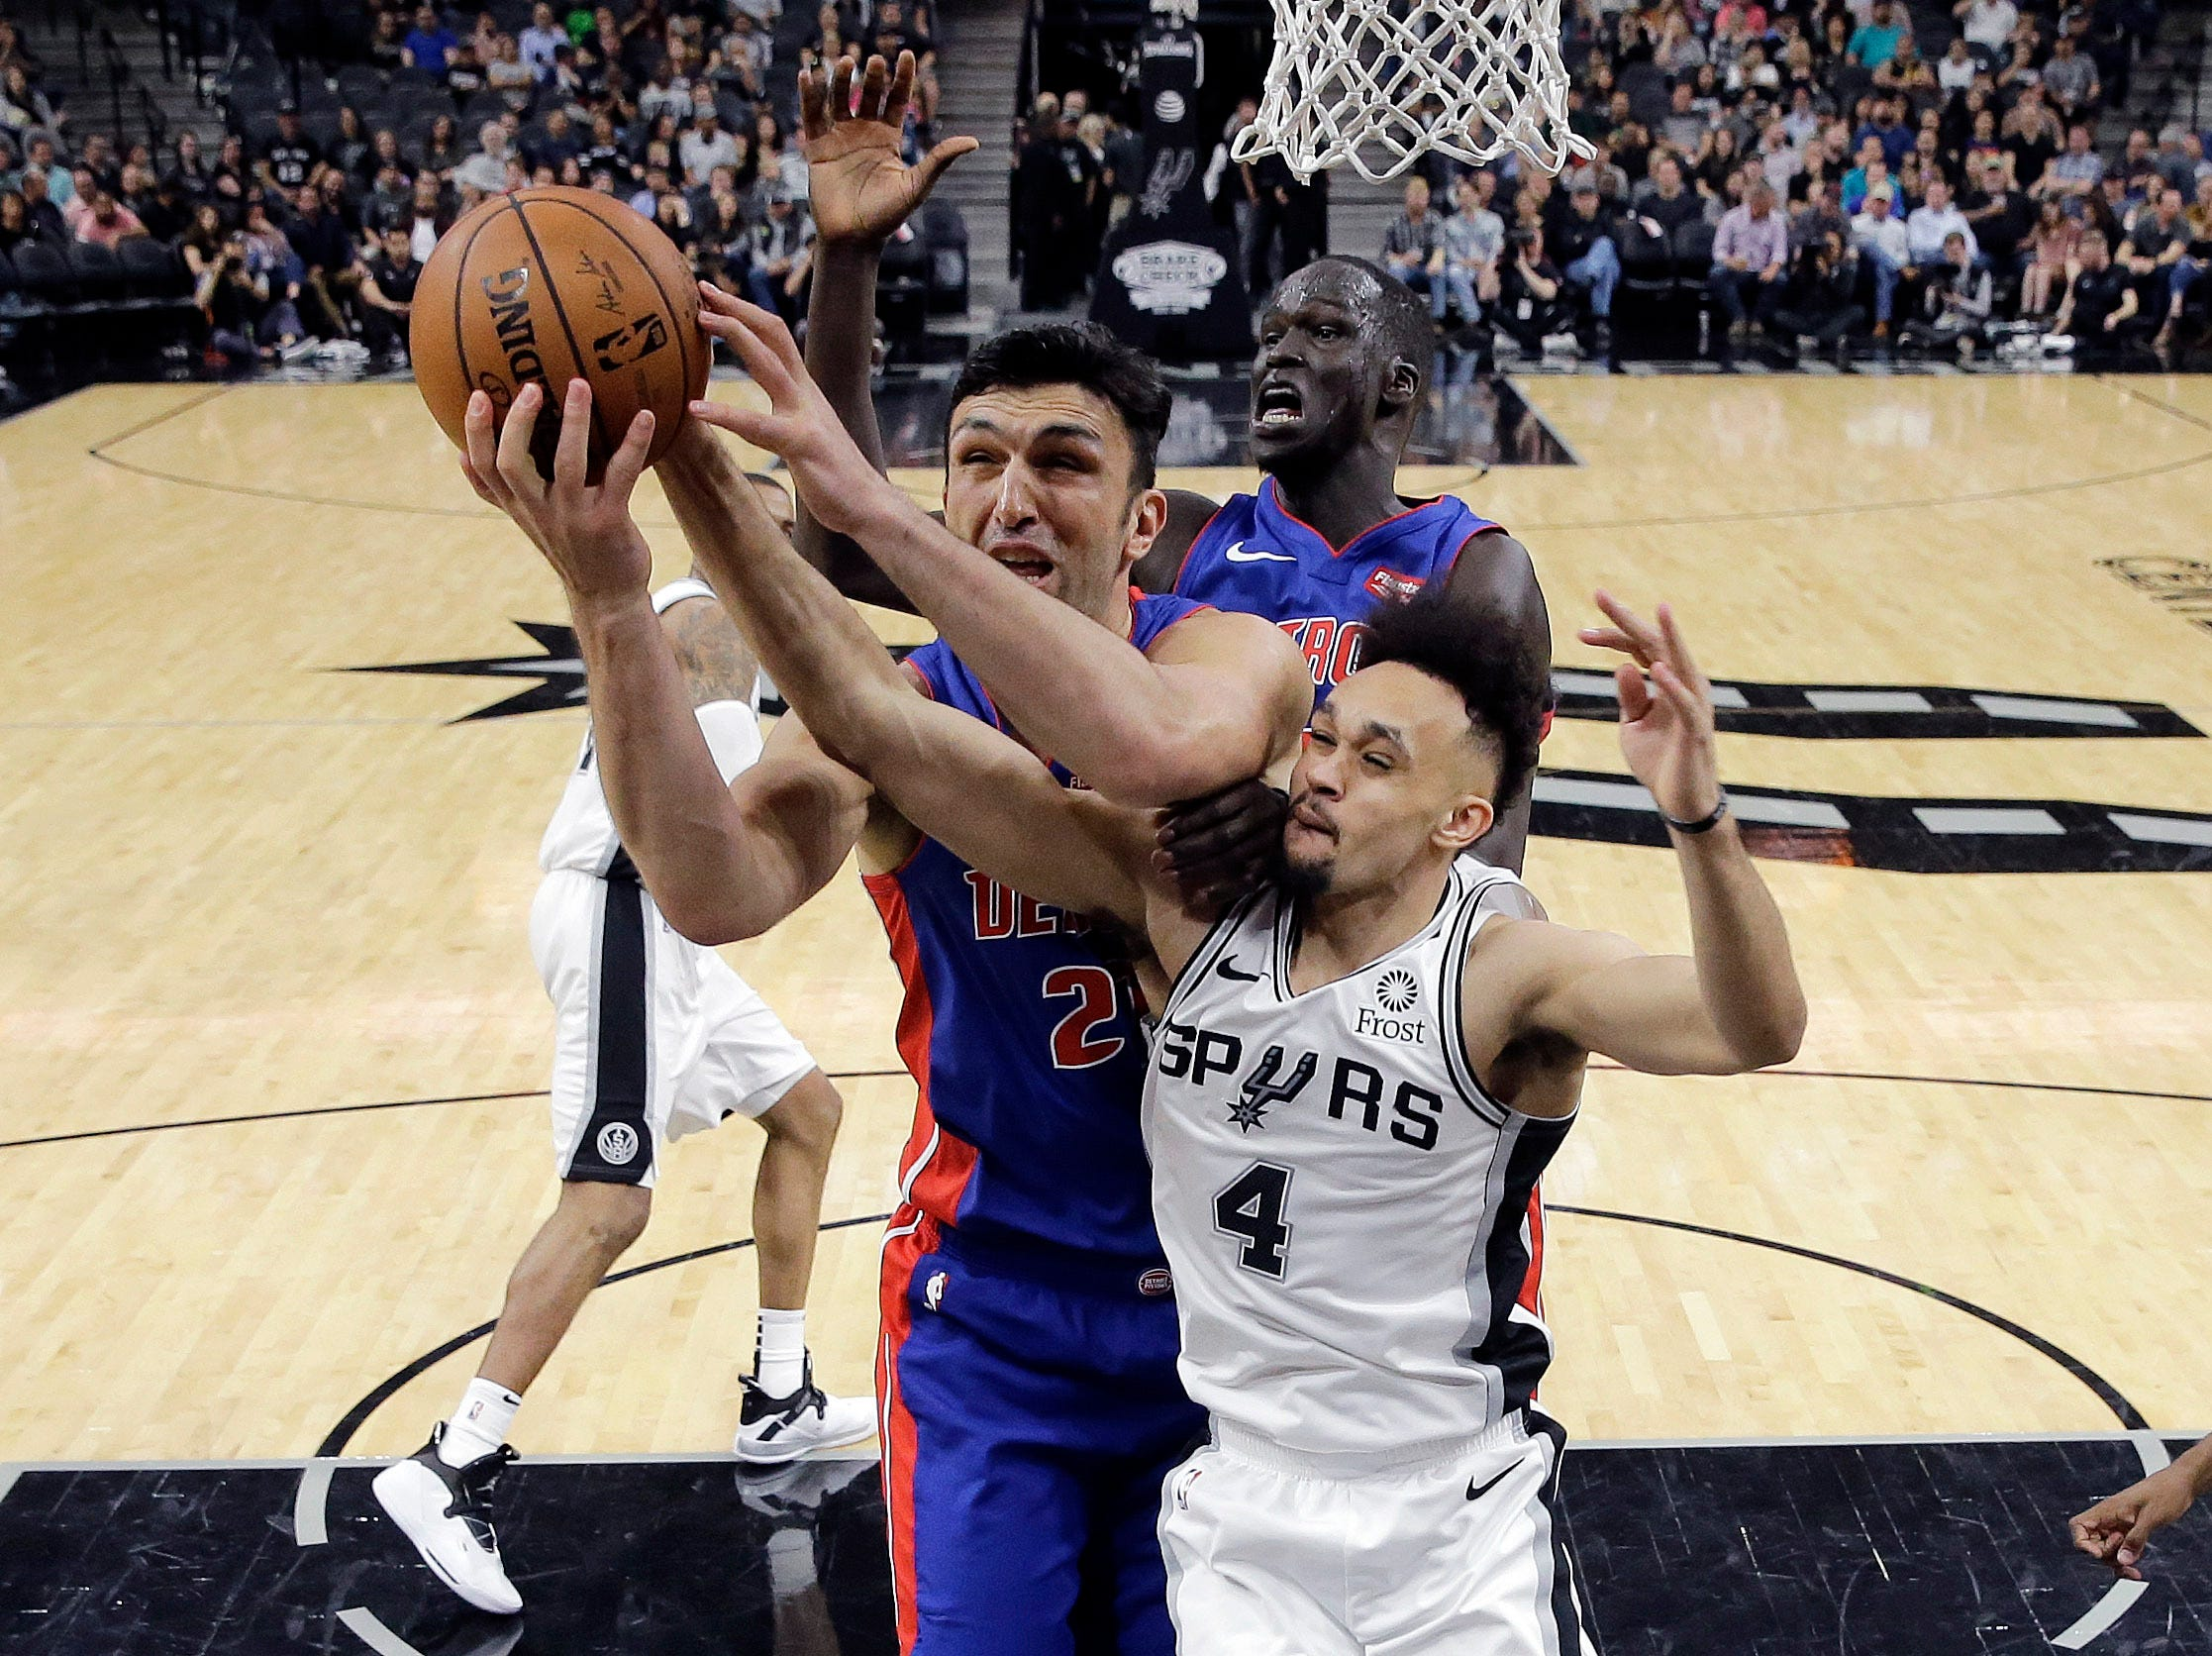 Detroit Pistons center Zaza Pachulia (27) and San Antonio Spurs guard Derrick White (4) vie for control of a rebound during the second half.